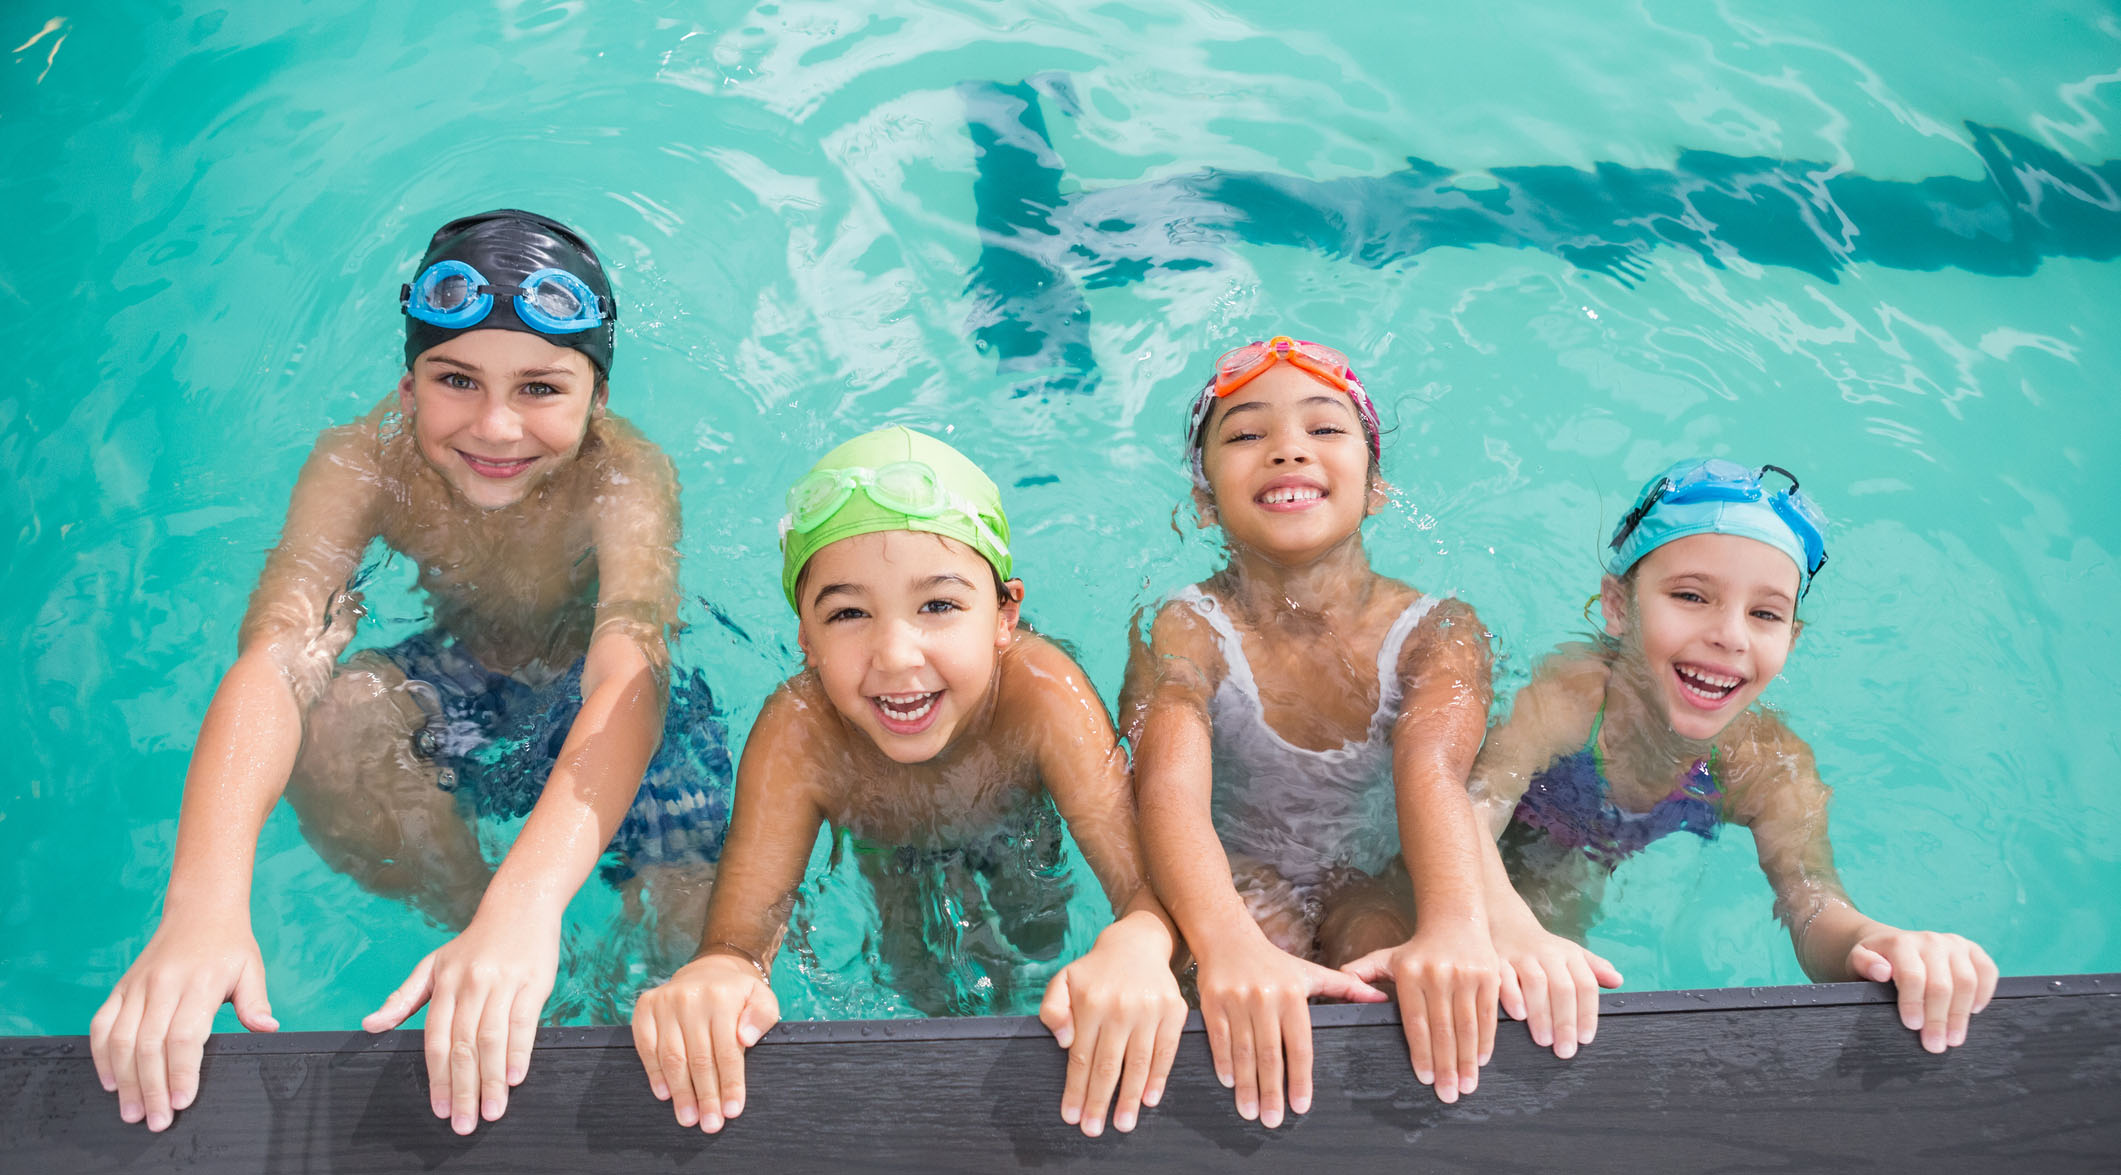 Swim Lessons - Hello! My name is Courtney Wagner and I am a recent graduate of King's College. I am CPR/AED/First Aid and lifeguard certified through the American Red Cross. I also hold my Water Safety Instruction certification. I have had the pleasure of being a lifeguard at Newberry for the past 6 years and the swim lesson instructor and coordinator for the last 3 years.Private Swimming Lessons:- Available Monday-Friday beginning June 17th- Times include 9am through 11am- Cost is $25 for a half hourGroup Swim Camp:- Available June 24-28th and August 5-9th- Each camp is every day, Monday-Friday, for one hour- Times include 9am through 11am based on child's age/swimming ability- Cost is $50 for the weekInterested in signing up?- Contact Courtney Wagner via phone or text at (570) 690-6672